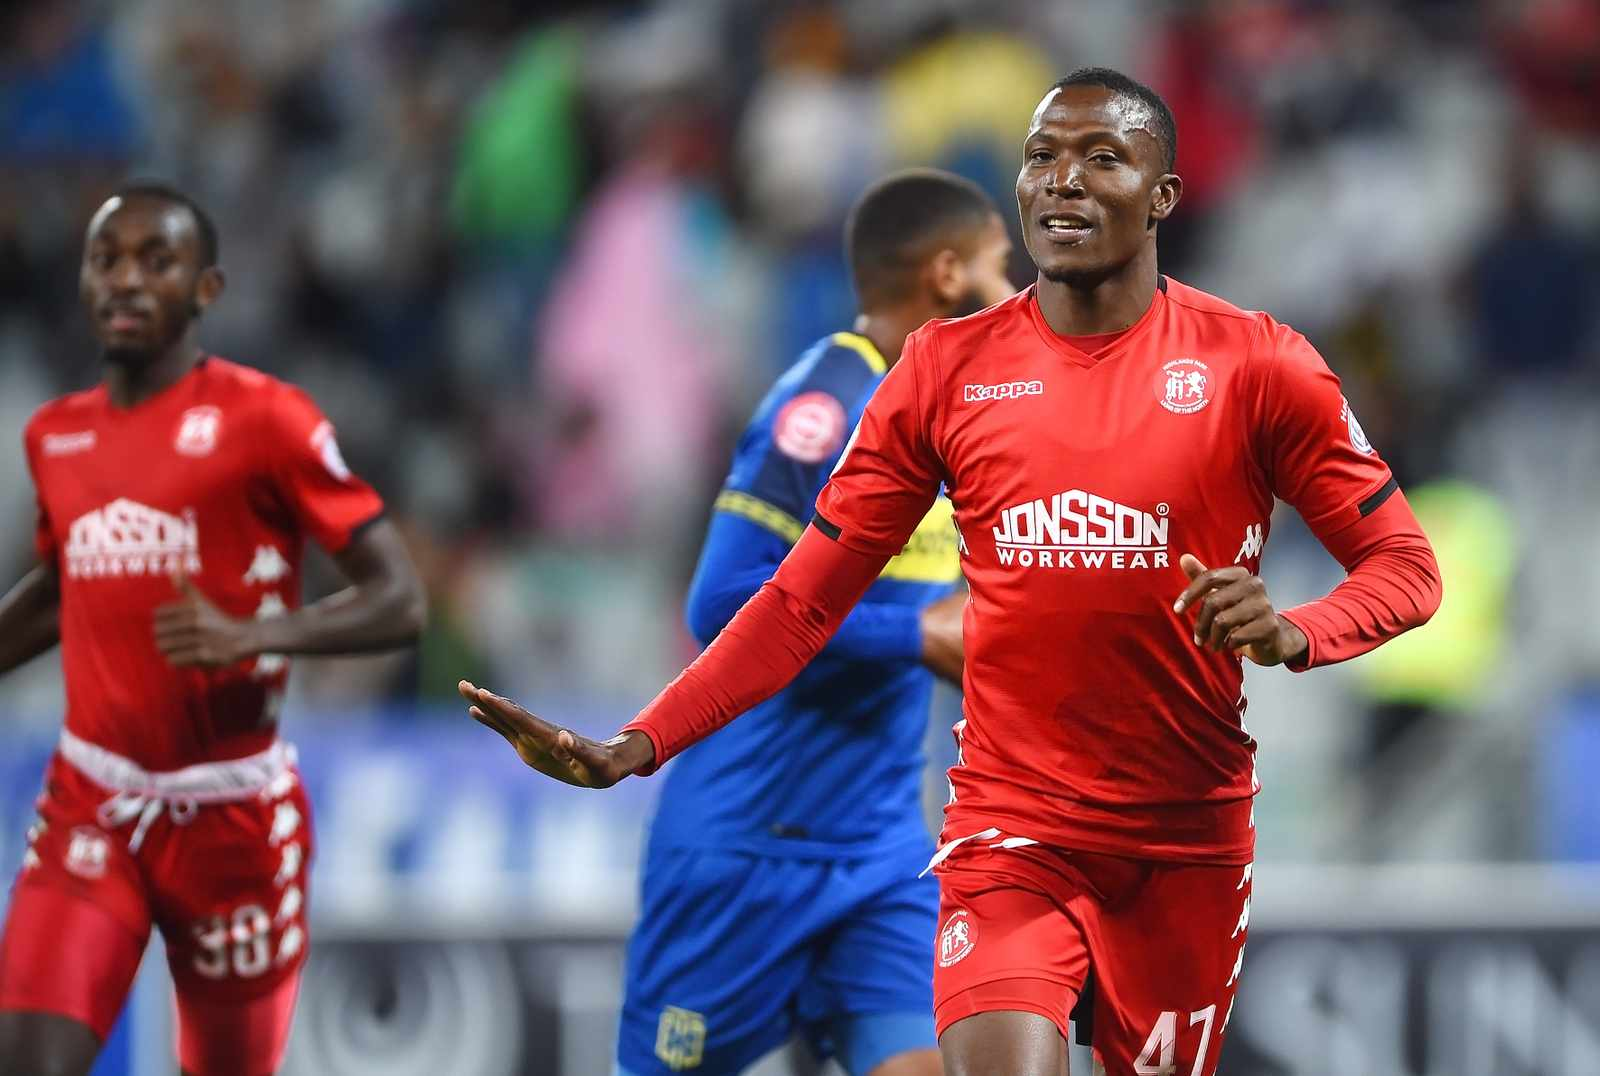 SOUTH AFRICA - Cape Town - 23 April 2019-  Tendai Ndoro of Highlands Park  scores against Cape Town City in a PSL match played at the Cape Town Stadium . Photograph; Phando/Jikelo/African News Agency(ANA)